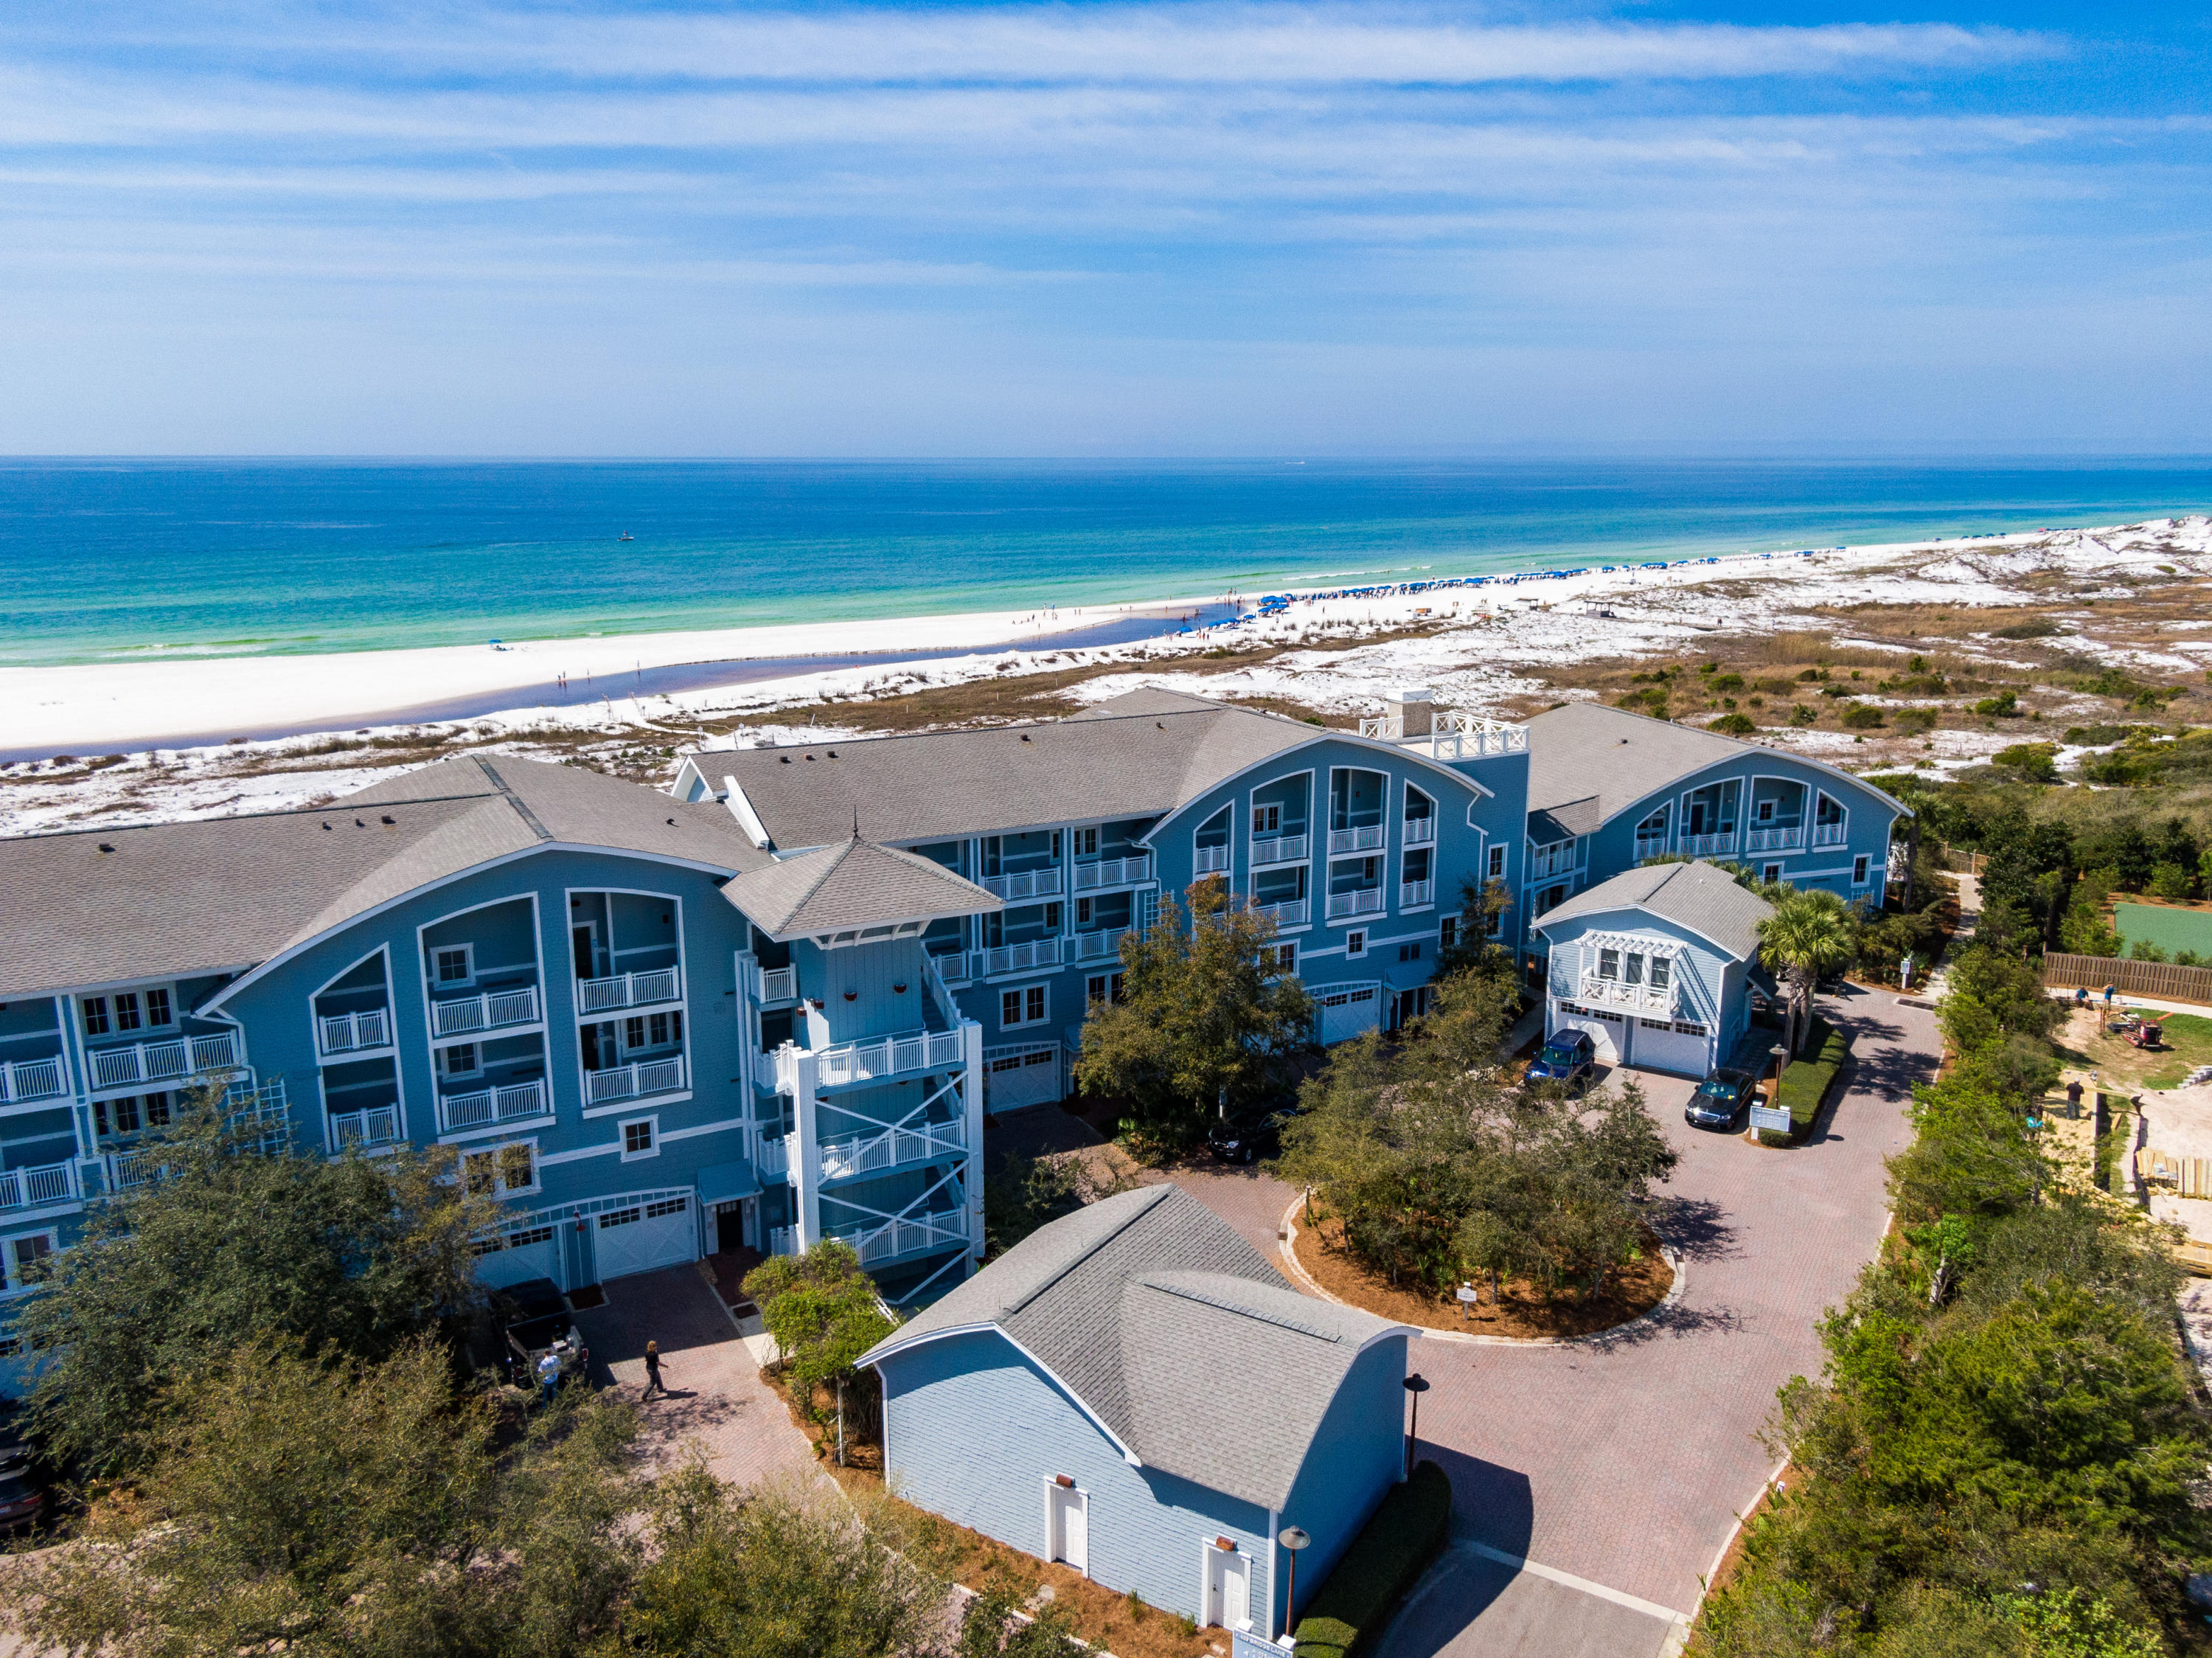 429 S Bridge Lane UNIT A430, Inlet Beach, FL 32461